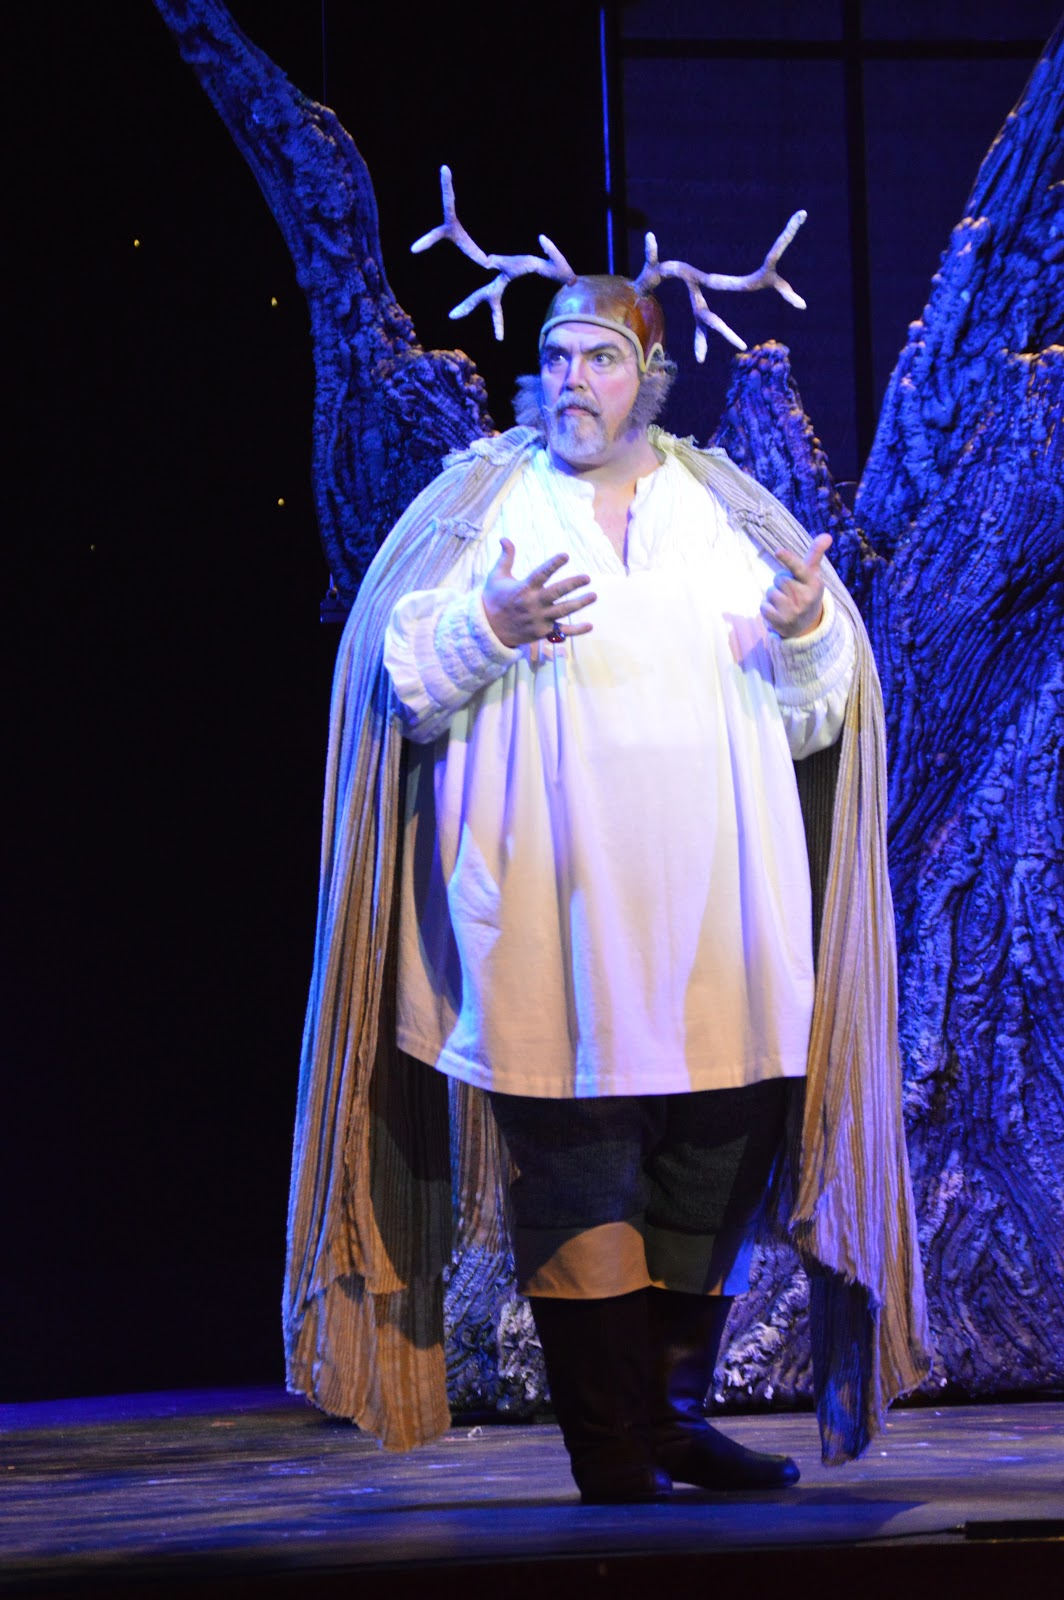 IN REVIEW: baritone RICHARD ZELLER in the title rôle in UNCG Opera Theatre's April 2019 production of Giuseppe Verdi's FALSTAFF [Photograph by Tamara Beliy and Amber Rose Romero, © by UNCG Opera Theatre]